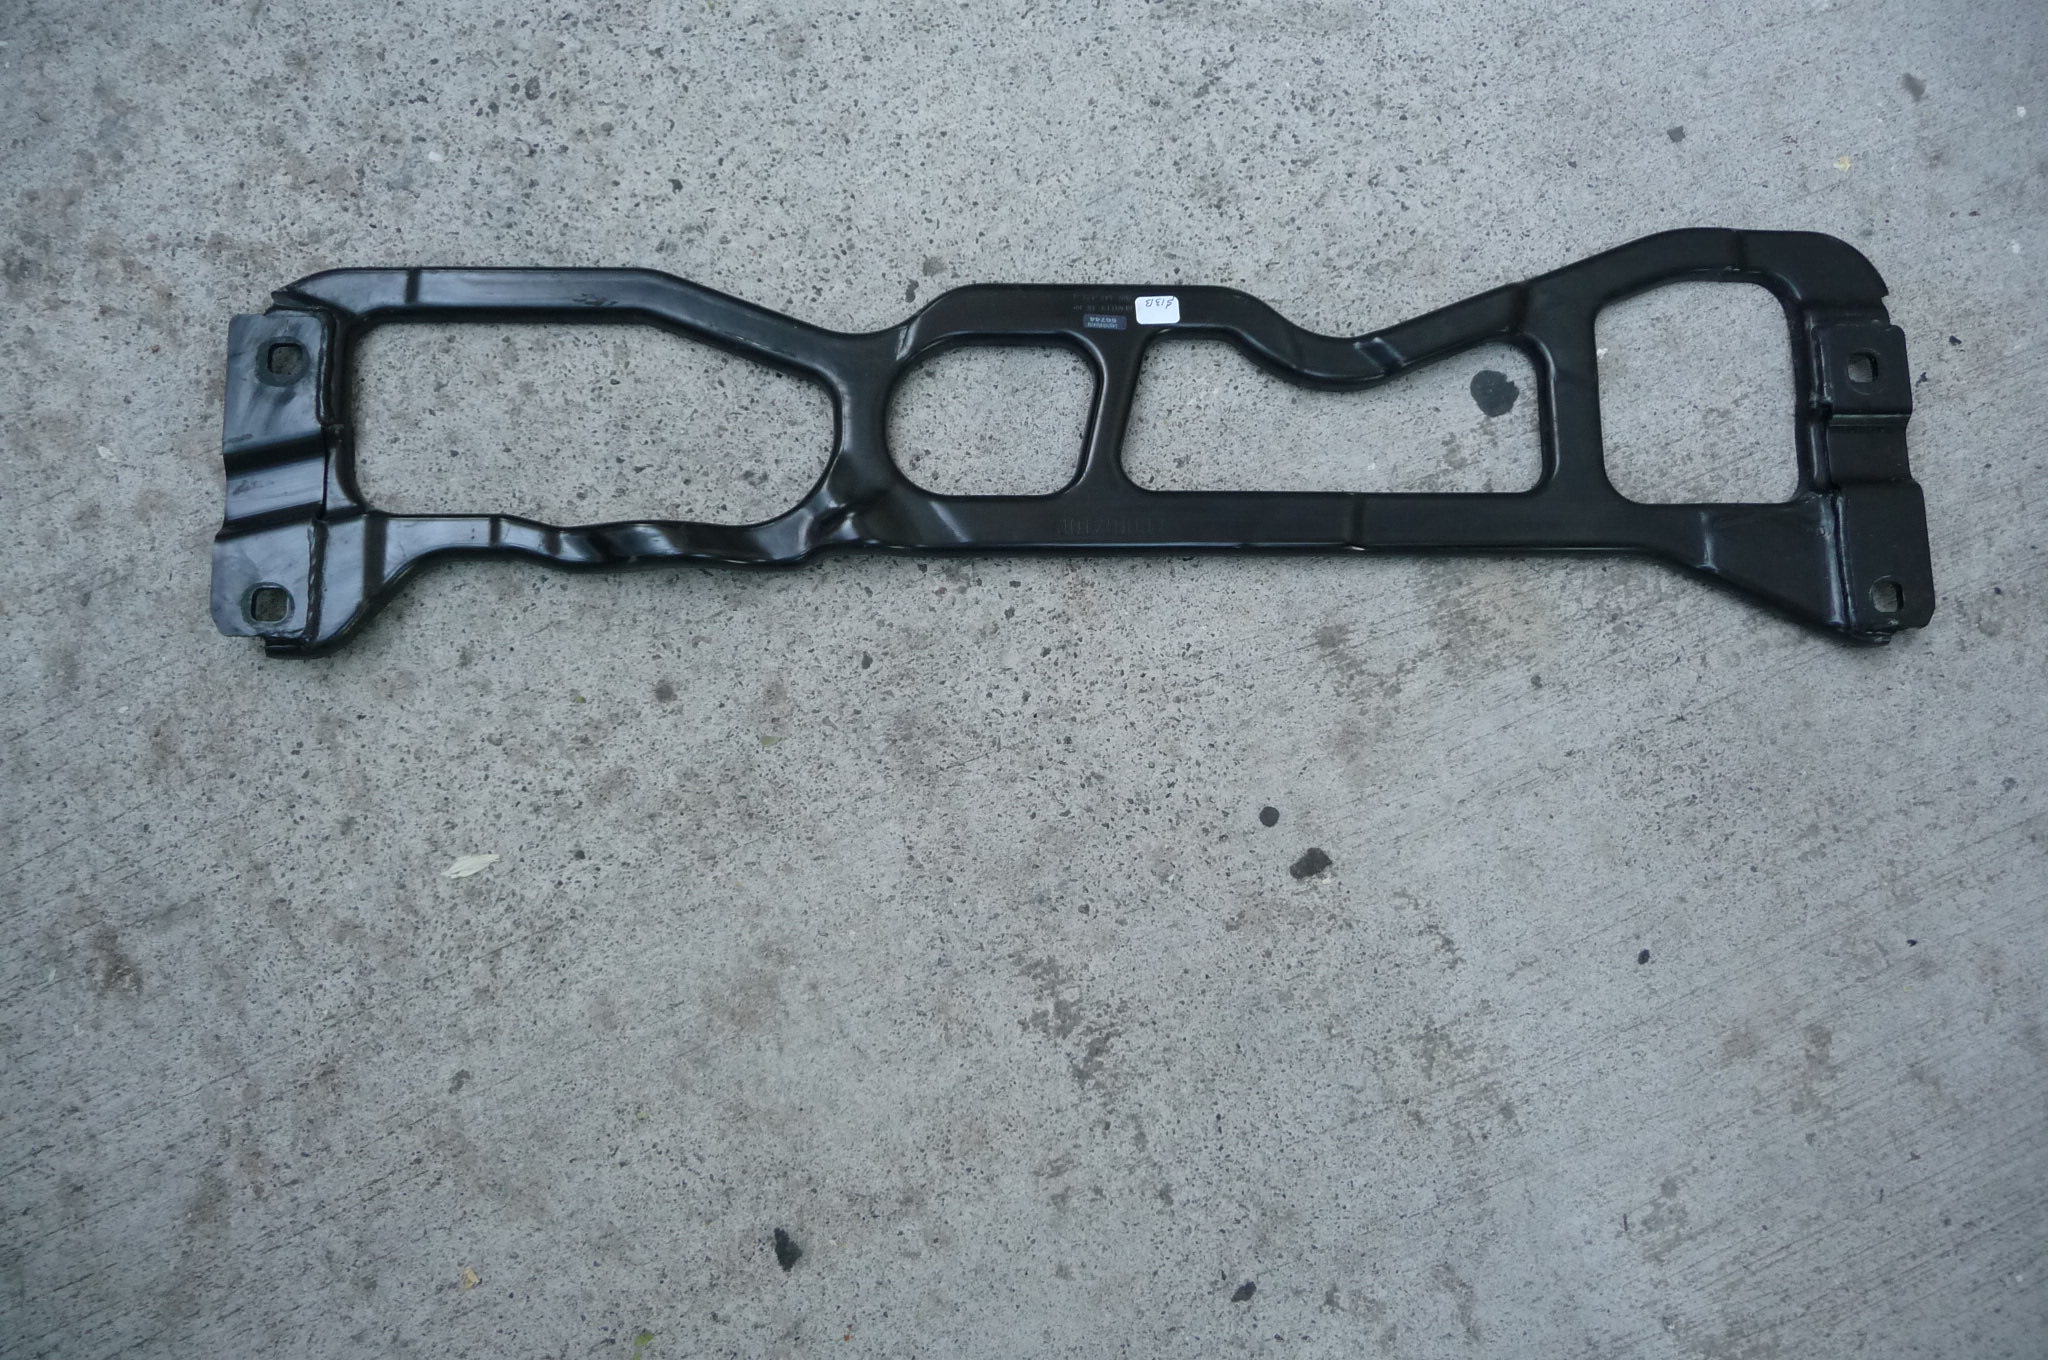 Bentley Continental GT GTC front end Section frame 3W0199171A Original OEM OE